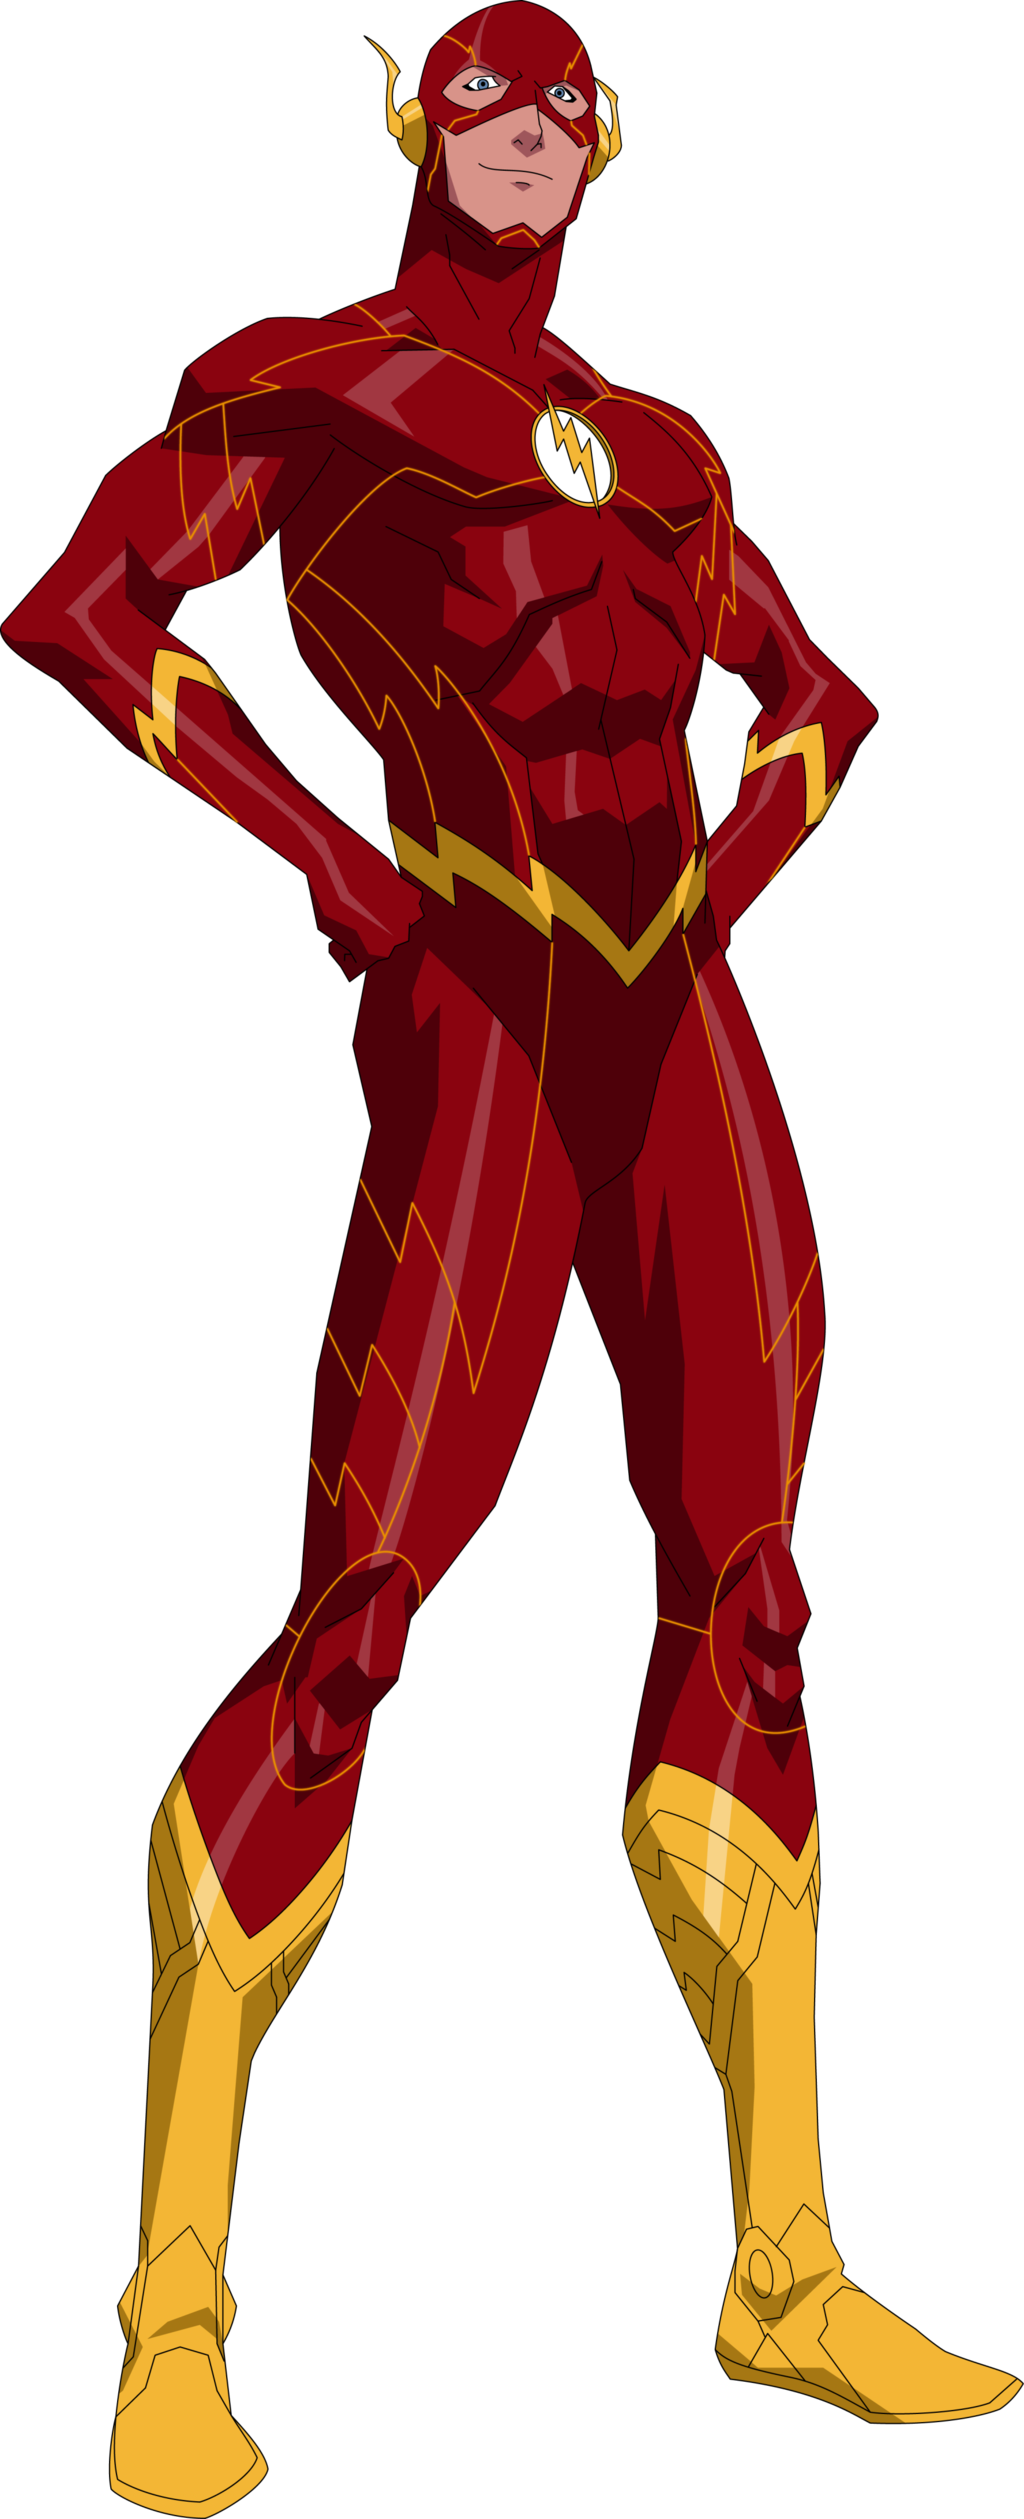 The flash new 52 png. By owc deviantart com